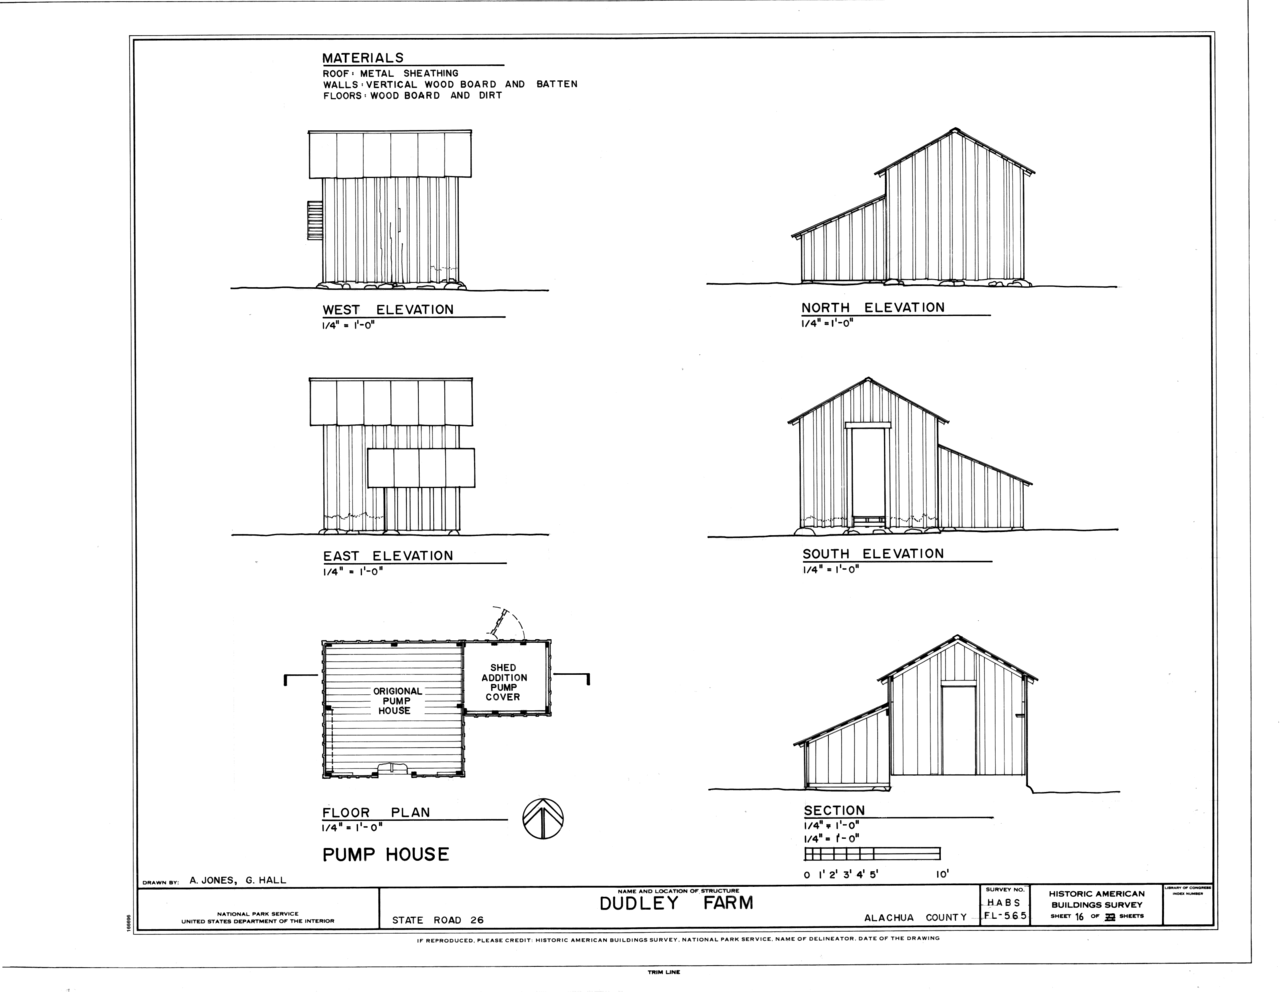 Elevation In Plan : File pump house elevations floor plan and section